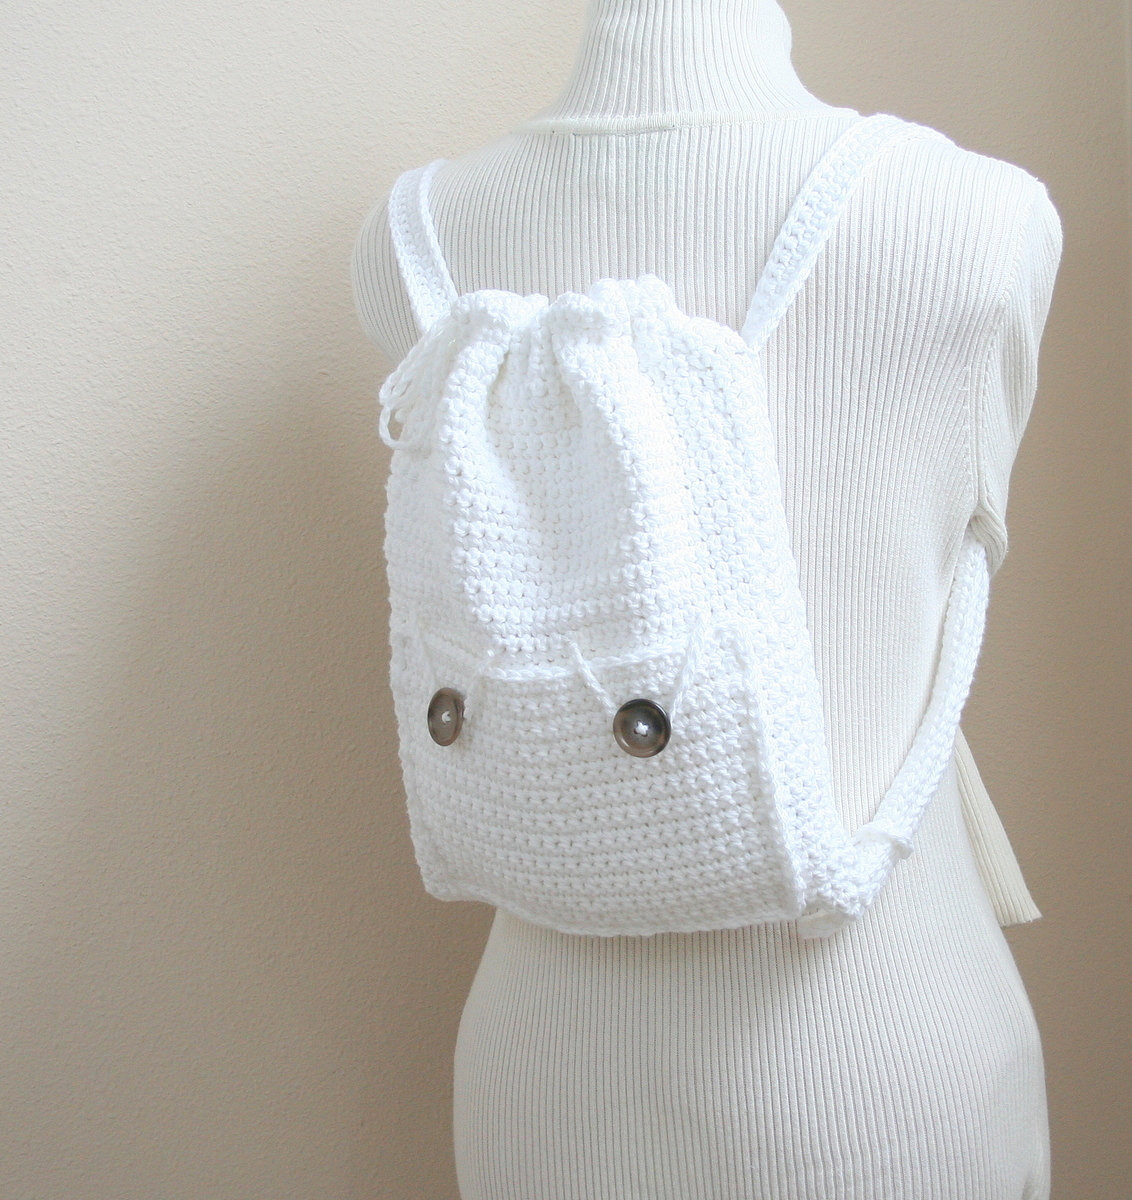 Crochet Backpack Purse Pattern Small Backpack